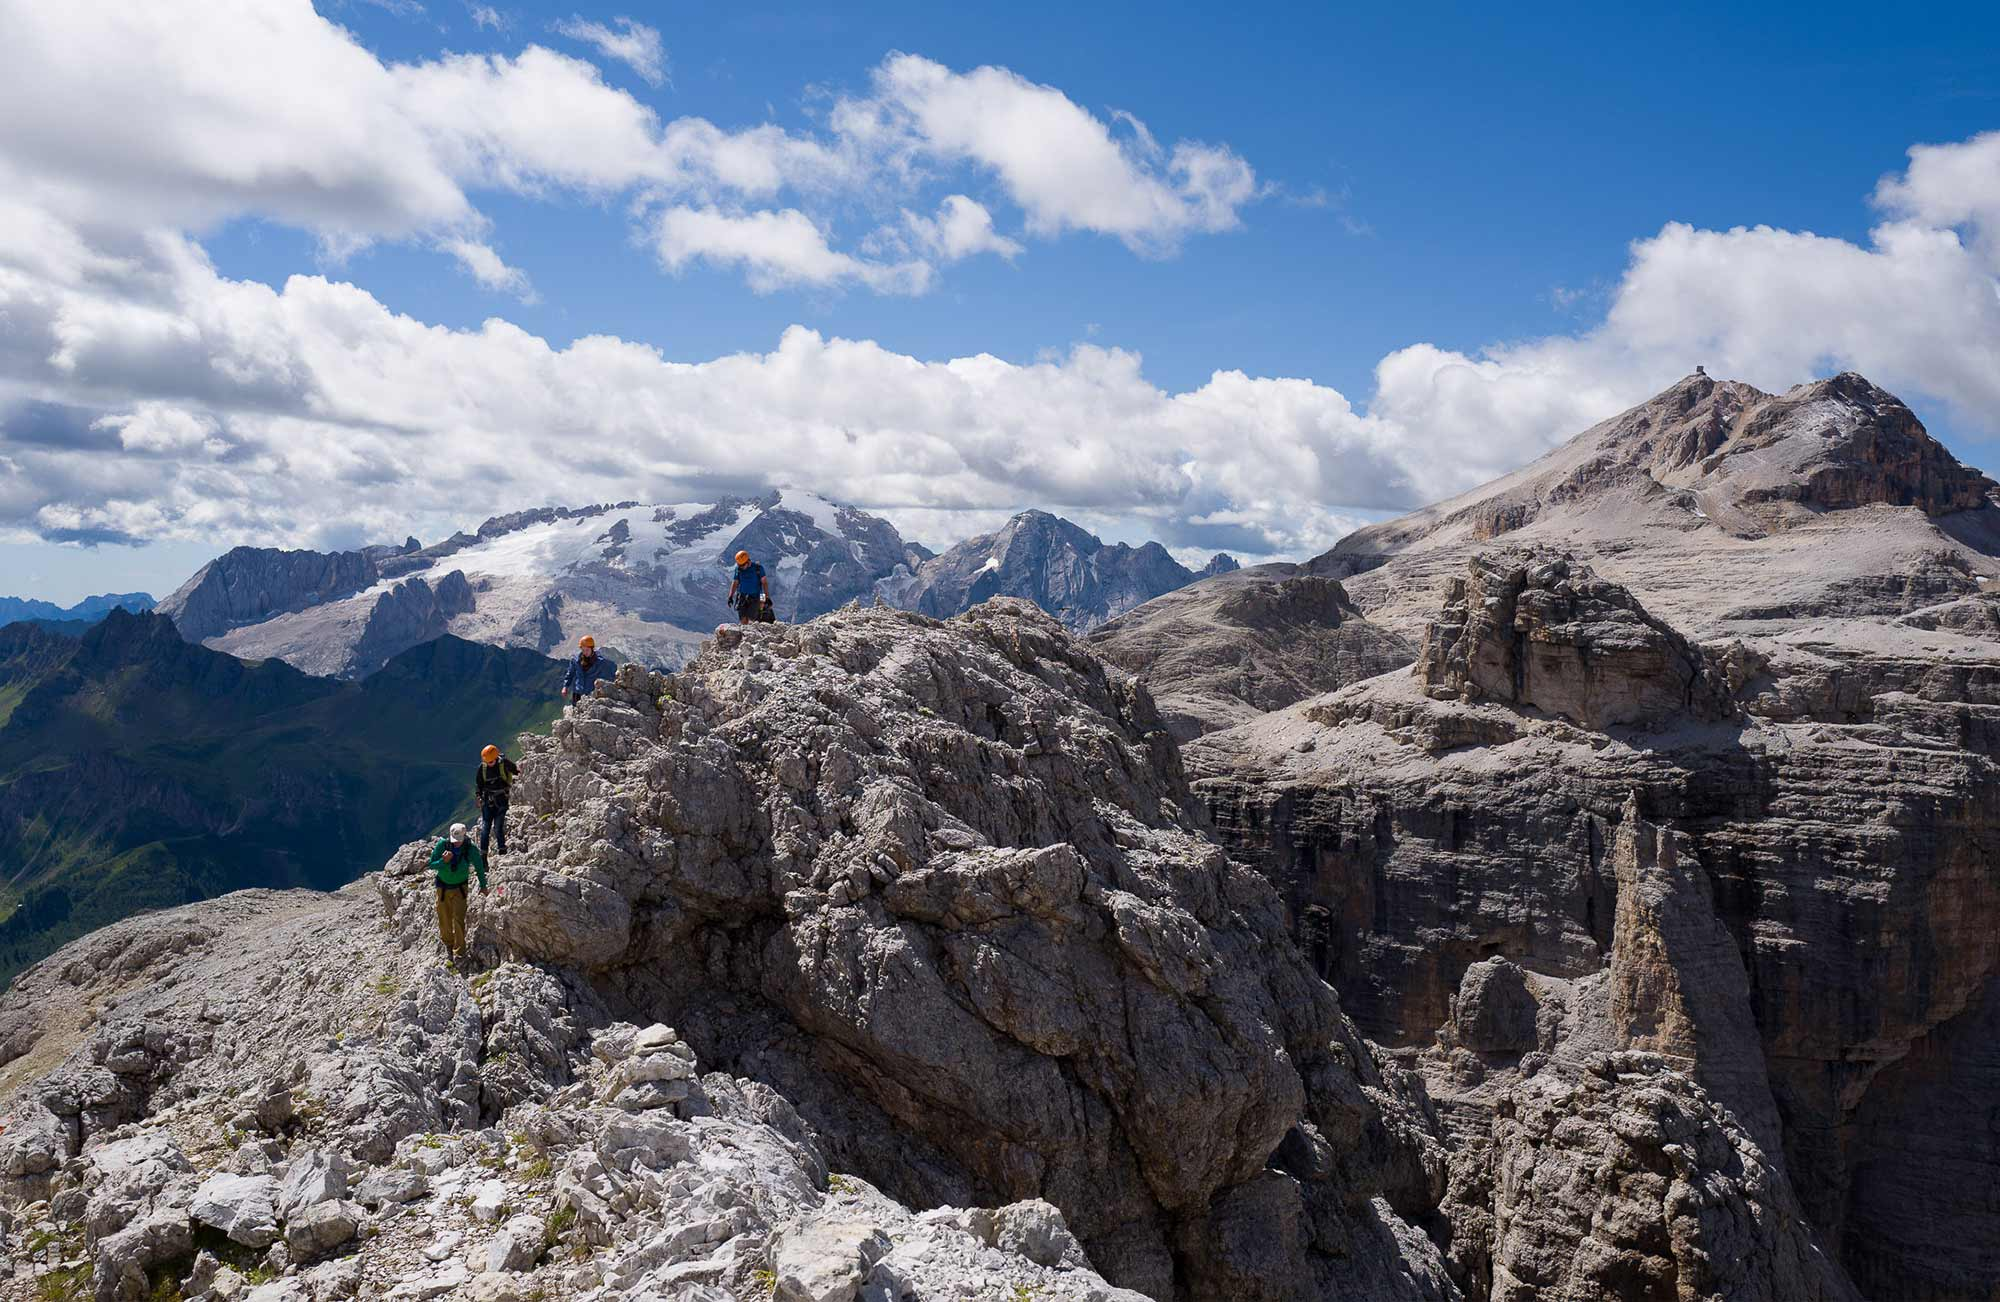 Trekking in the Dolomites